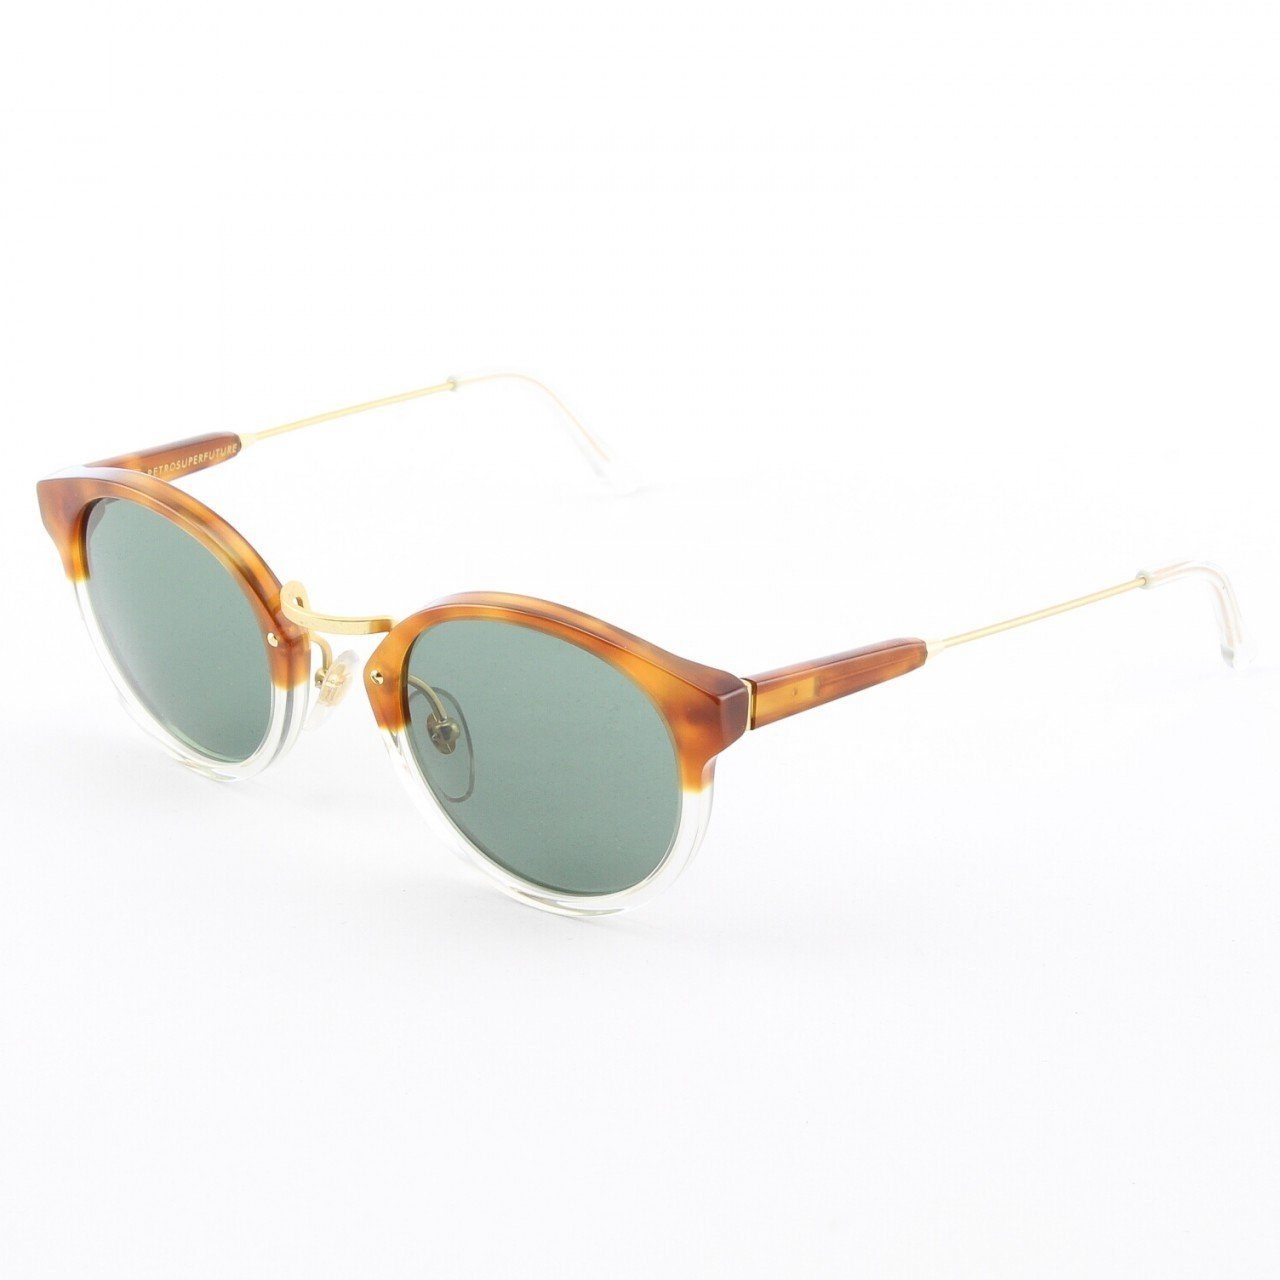 Super Panama 523/2T Sunglasses Havana Crystal with Green Zeiss Lenses by RETROSUPERFUTURE